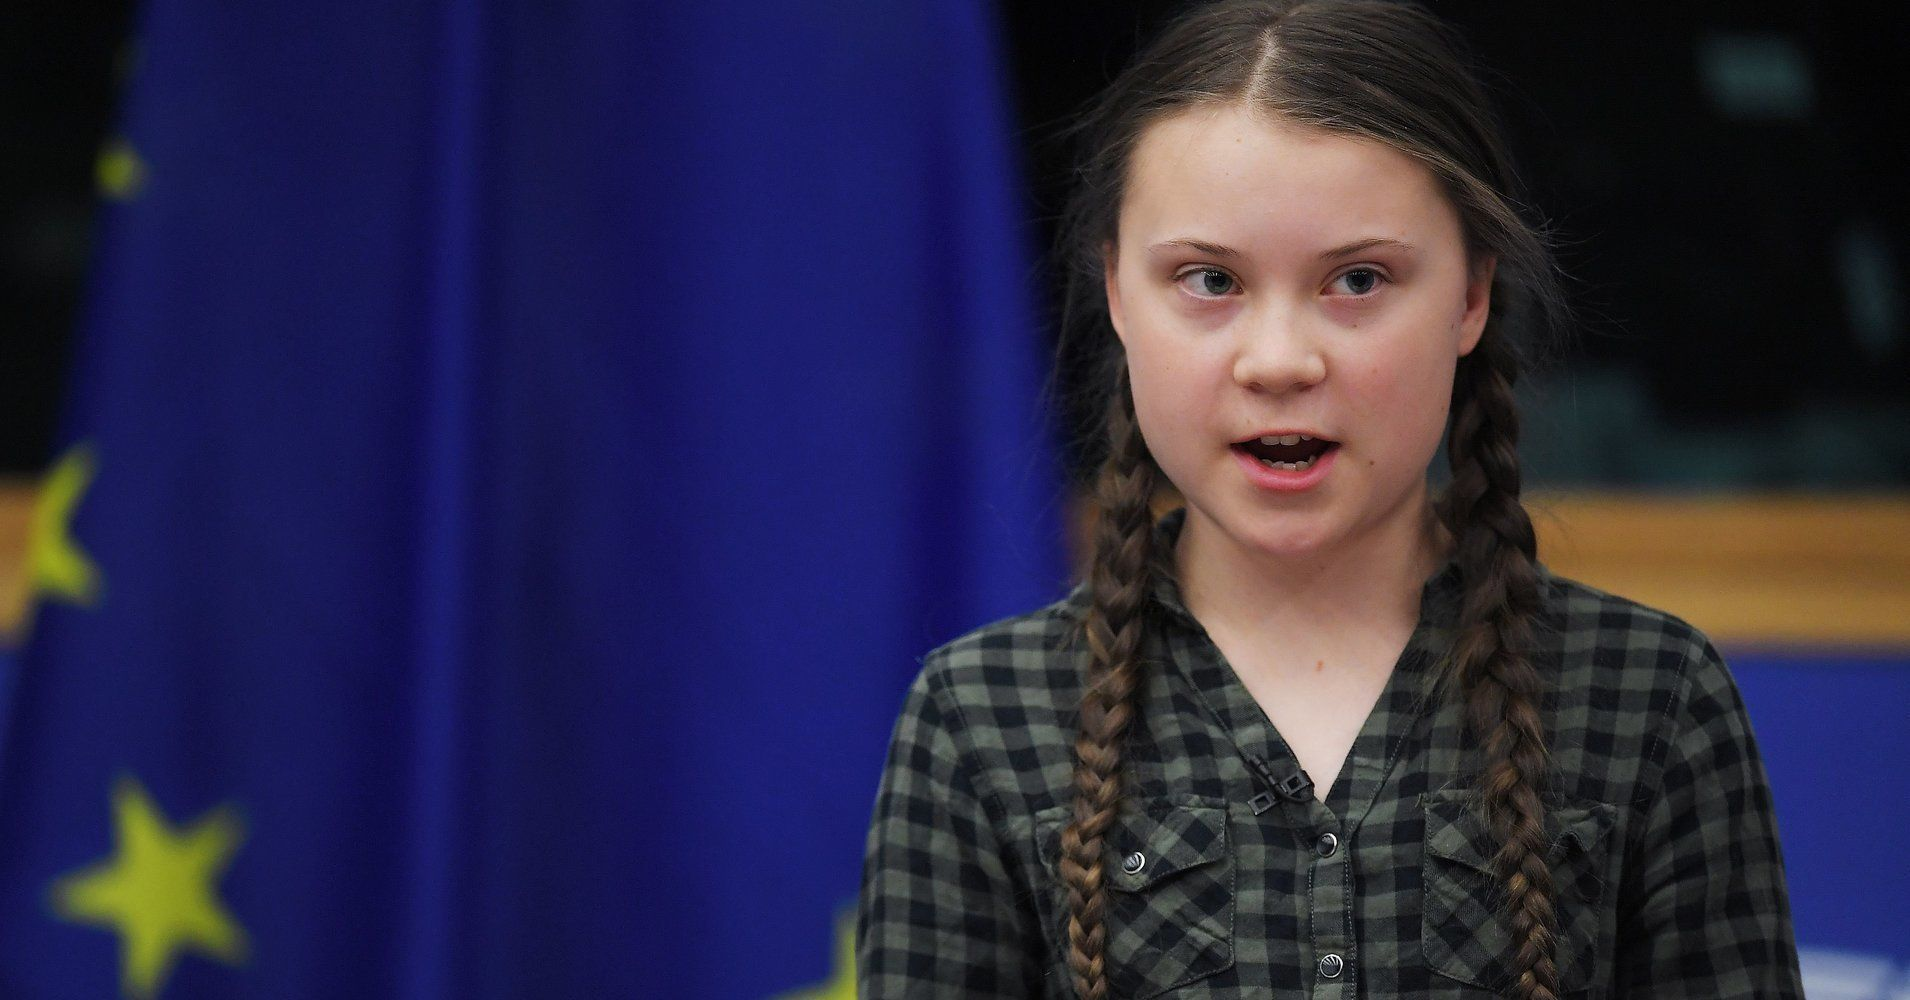 Teen Climate Activist Greta Thunberg To EU Lawmakers: 'I Want You To